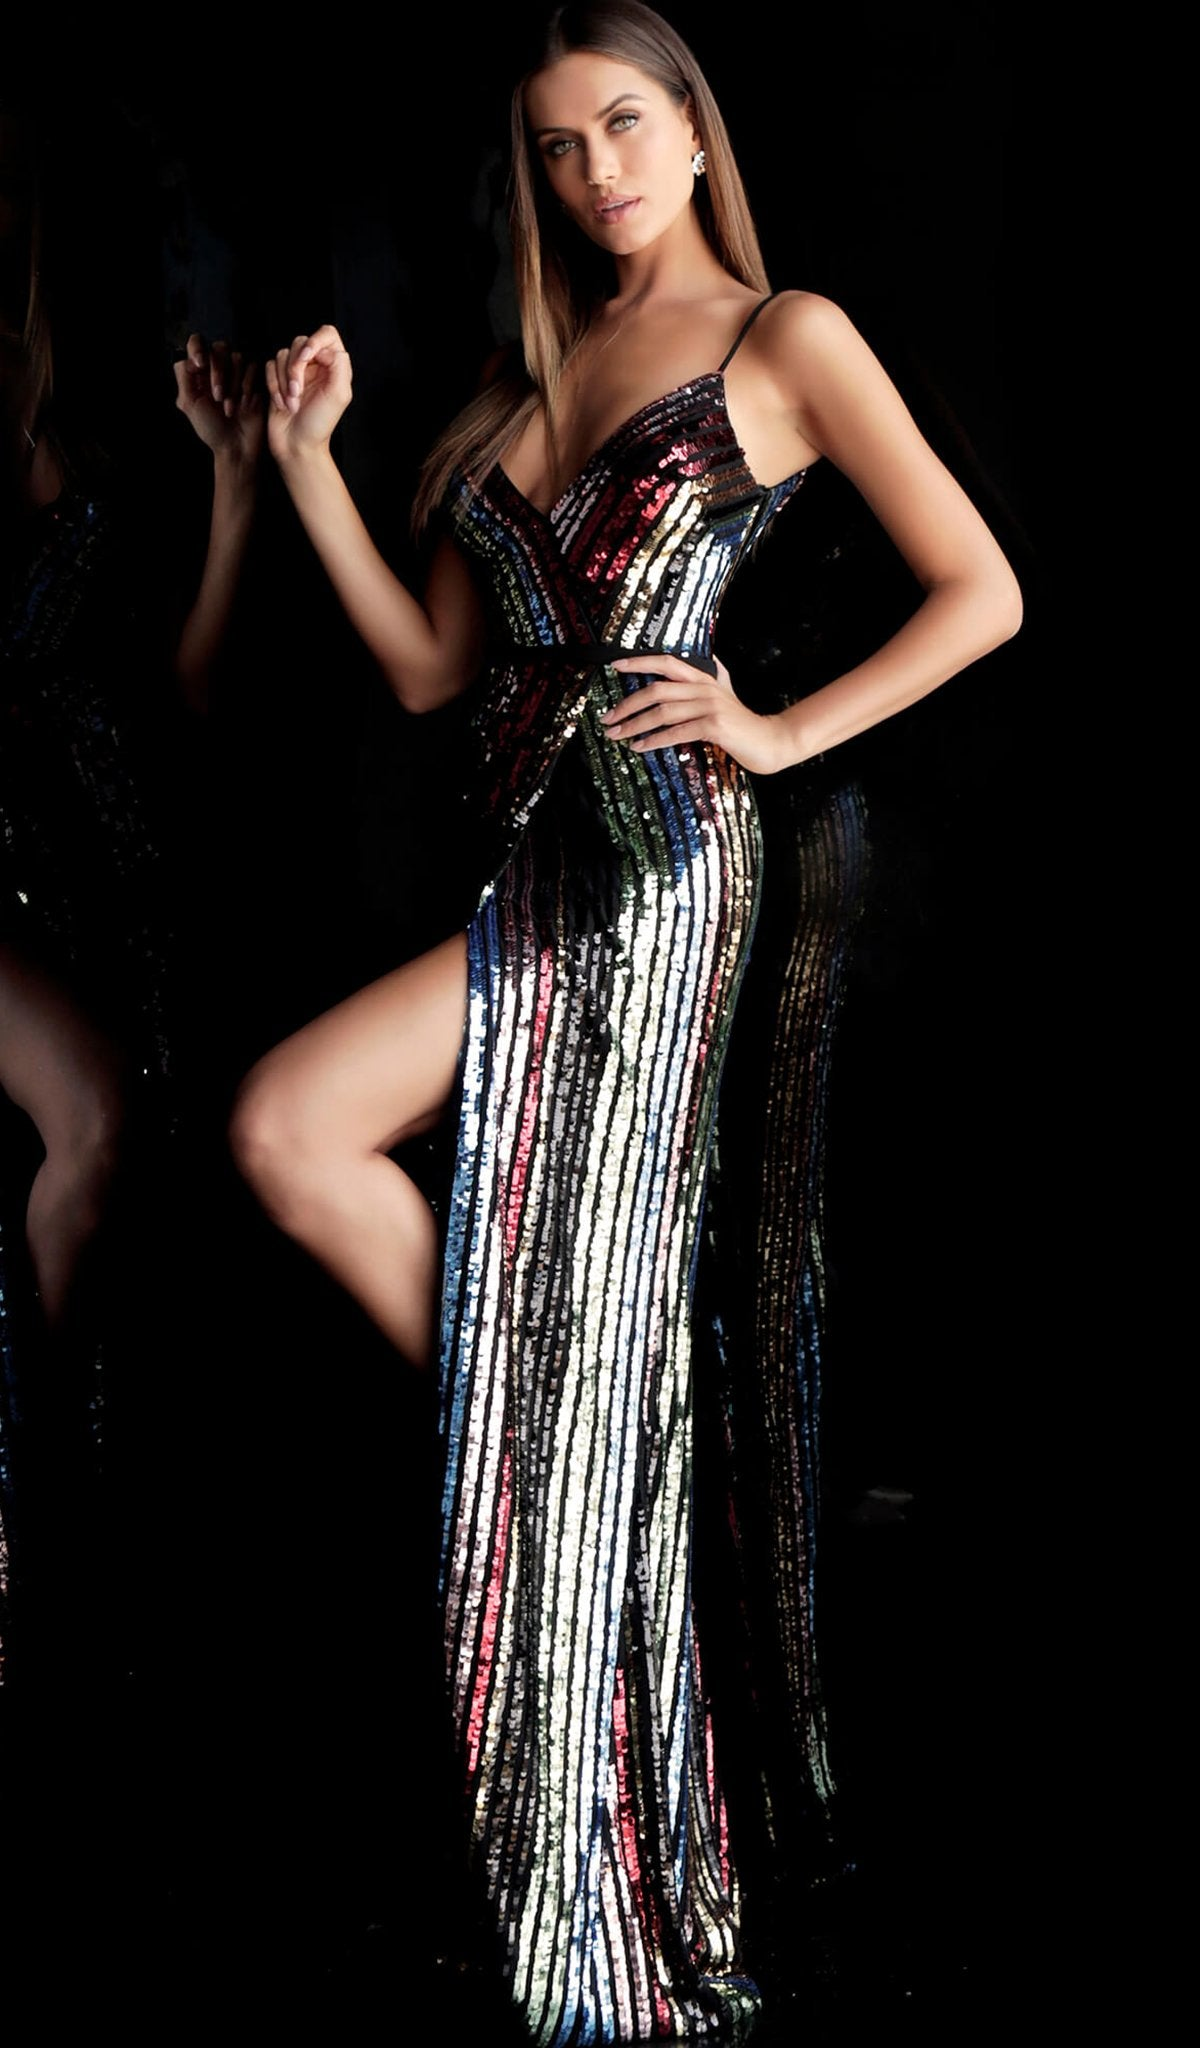 Jovani - 63962 Sequin-Striped High Slit Sheath Gown in Black